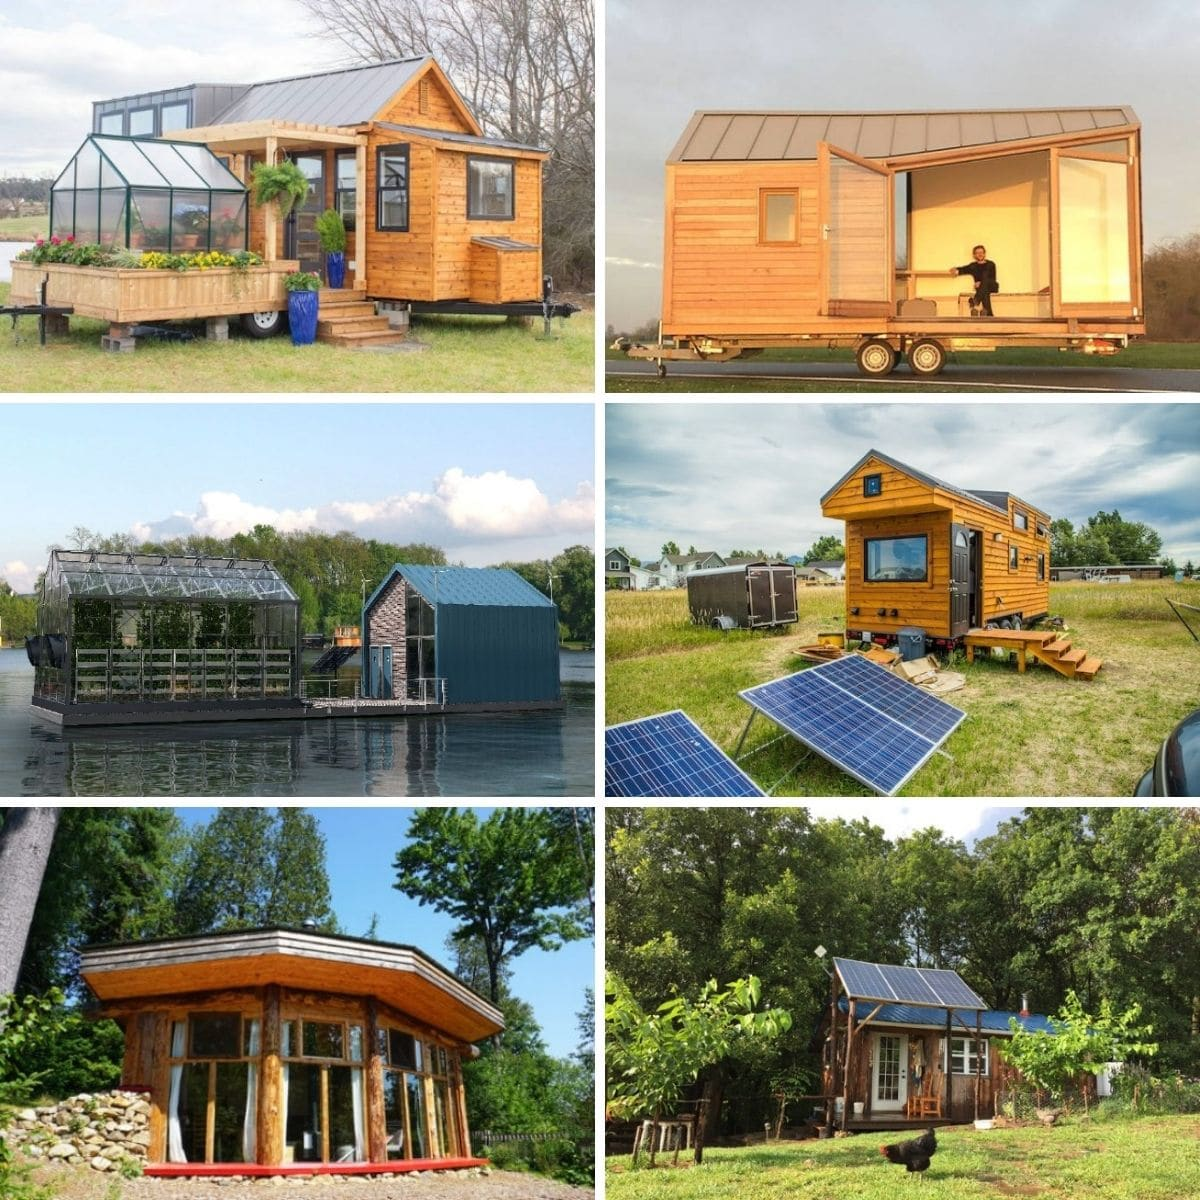 Collage photo featuring several of the sustainable tiny houses from the post.